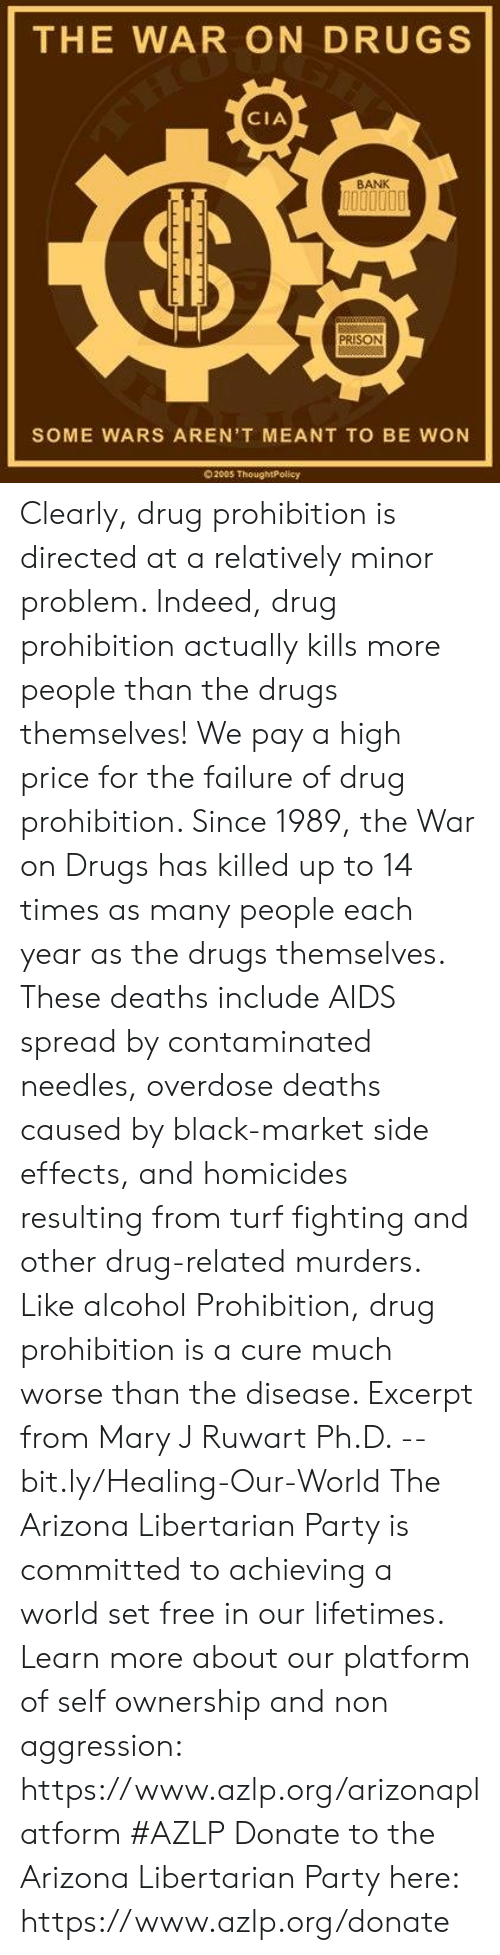 Drugs, Memes, and Party: THE WAR ON DRUGS  CIA  BANK  PRISON  SOME WARS AREN'T MEANT TO BE WON  200S ThoughtPolicy Clearly, drug prohibition is directed at a relatively minor problem. Indeed, drug prohibition actually kills more people than the drugs themselves! We pay a high price for the failure of drug prohibition. Since 1989, the War on Drugs has killed up to 14 times as many people each year as the drugs themselves. These deaths include AIDS spread by contaminated needles, overdose deaths caused by black-market side effects, and homicides resulting from turf fighting and other drug-related murders. Like alcohol Prohibition, drug prohibition is a cure much worse than the disease.   Excerpt from Mary J Ruwart Ph.D. -- bit.ly/Healing-Our-World  The Arizona Libertarian Party is committed to achieving a world set free in our lifetimes. Learn more about our platform of self ownership and non aggression: https://www.azlp.org/arizonaplatform  #AZLP  Donate to the Arizona Libertarian Party here: https://www.azlp.org/donate